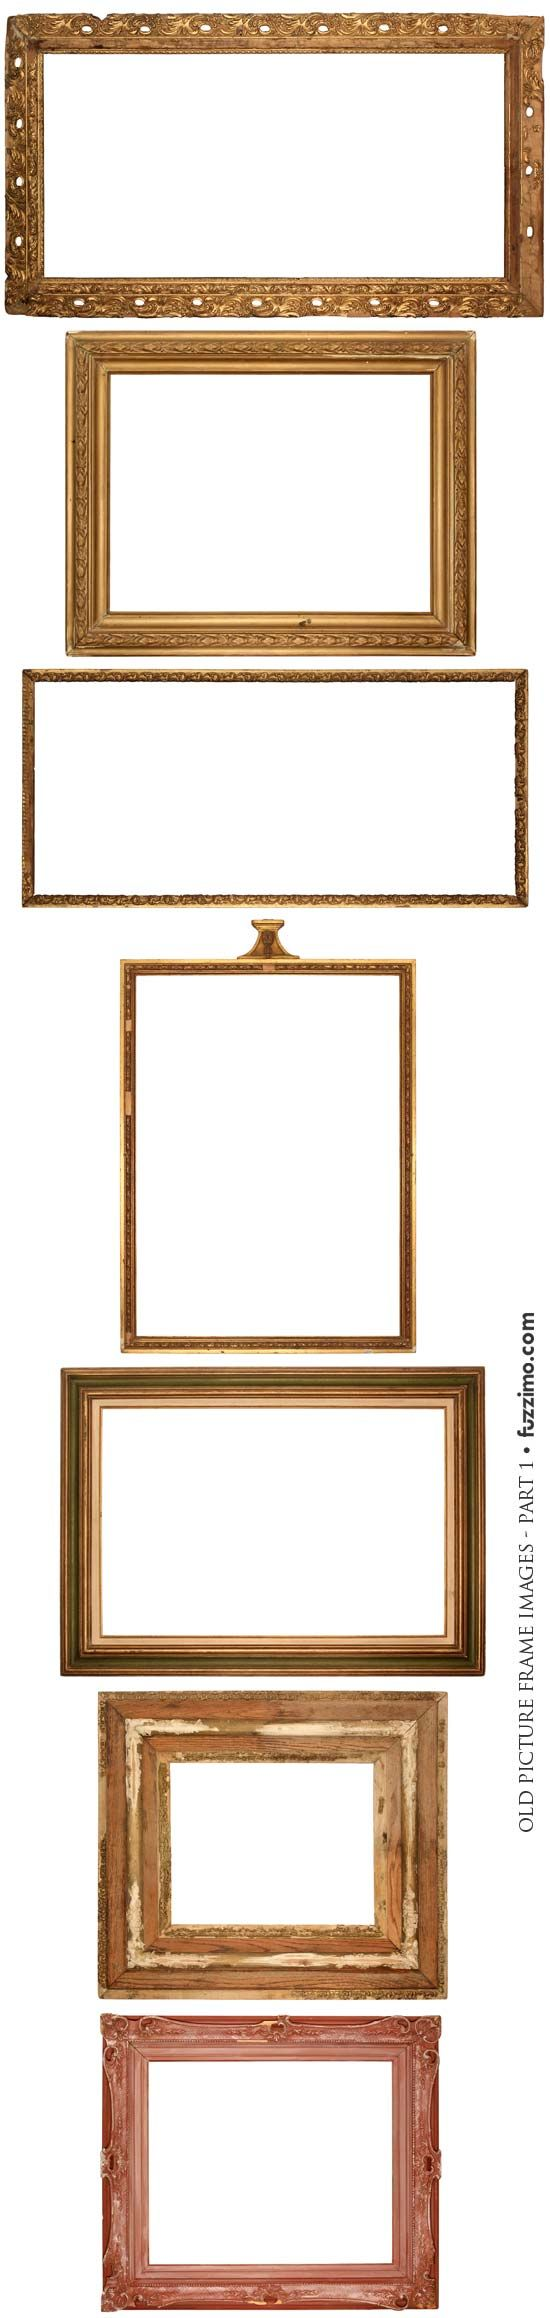 Hi res old picture frame images free high res antique picture frames from fuzzimo jeuxipadfo Choice Image